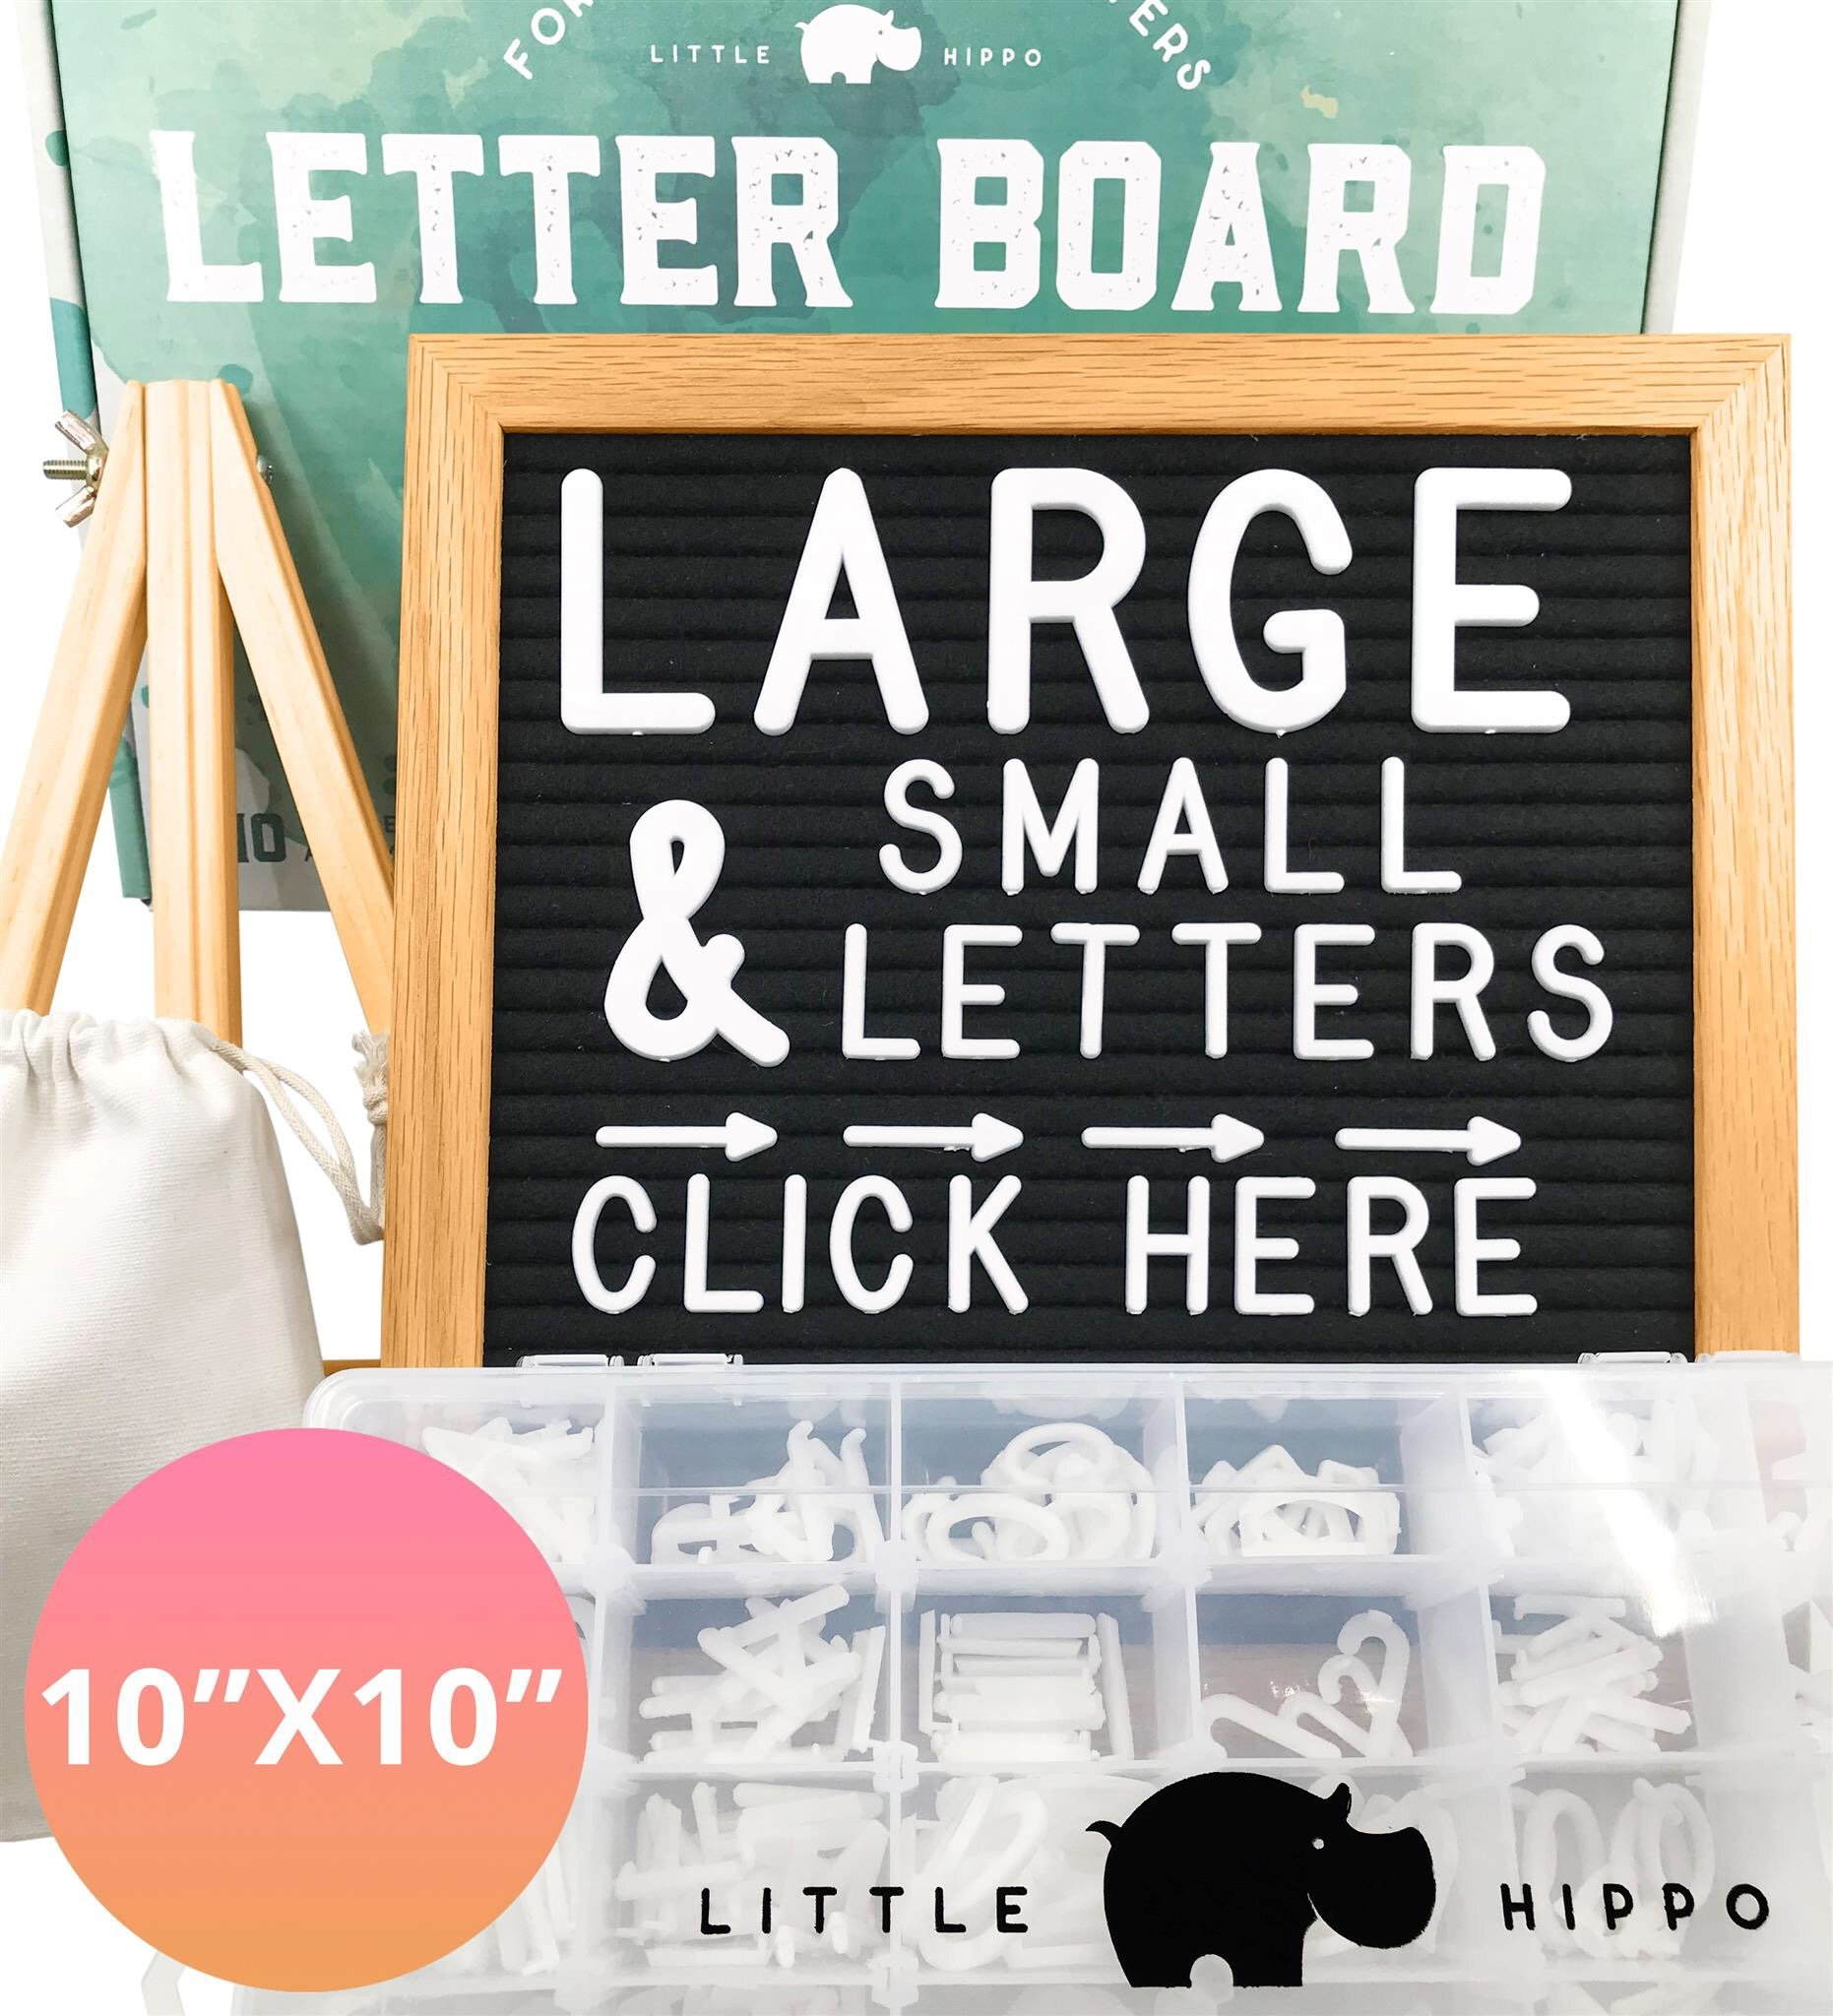 Letter Board 10x10 | +690 PRE-Cut Letters +Stand +Sorting Tray | (Black) Letter Board with Letters, Letters Board, Felt Letter Boards, letterboard, Word Board, Message Board, Letter Sign, Changeable